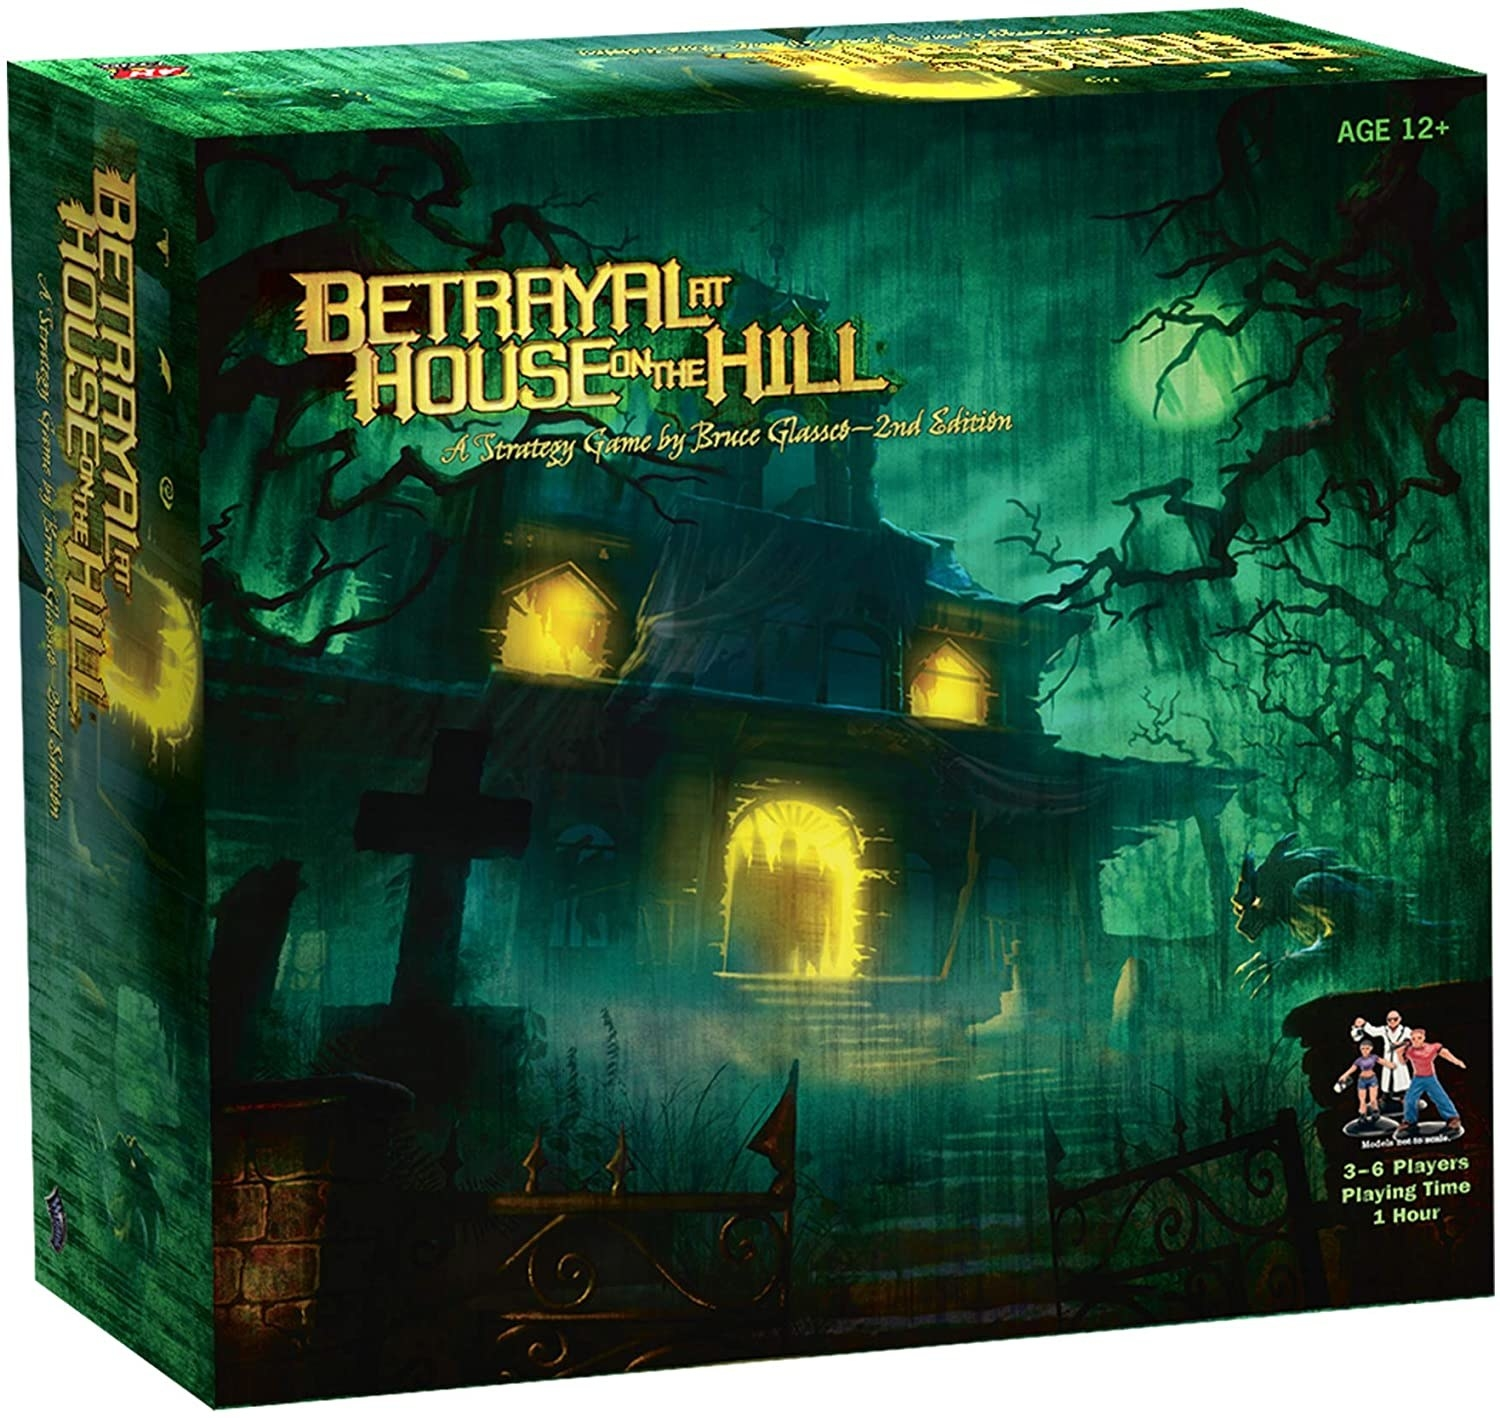 Betrayal At House on the Hill board game box with spooky haunted house on cover